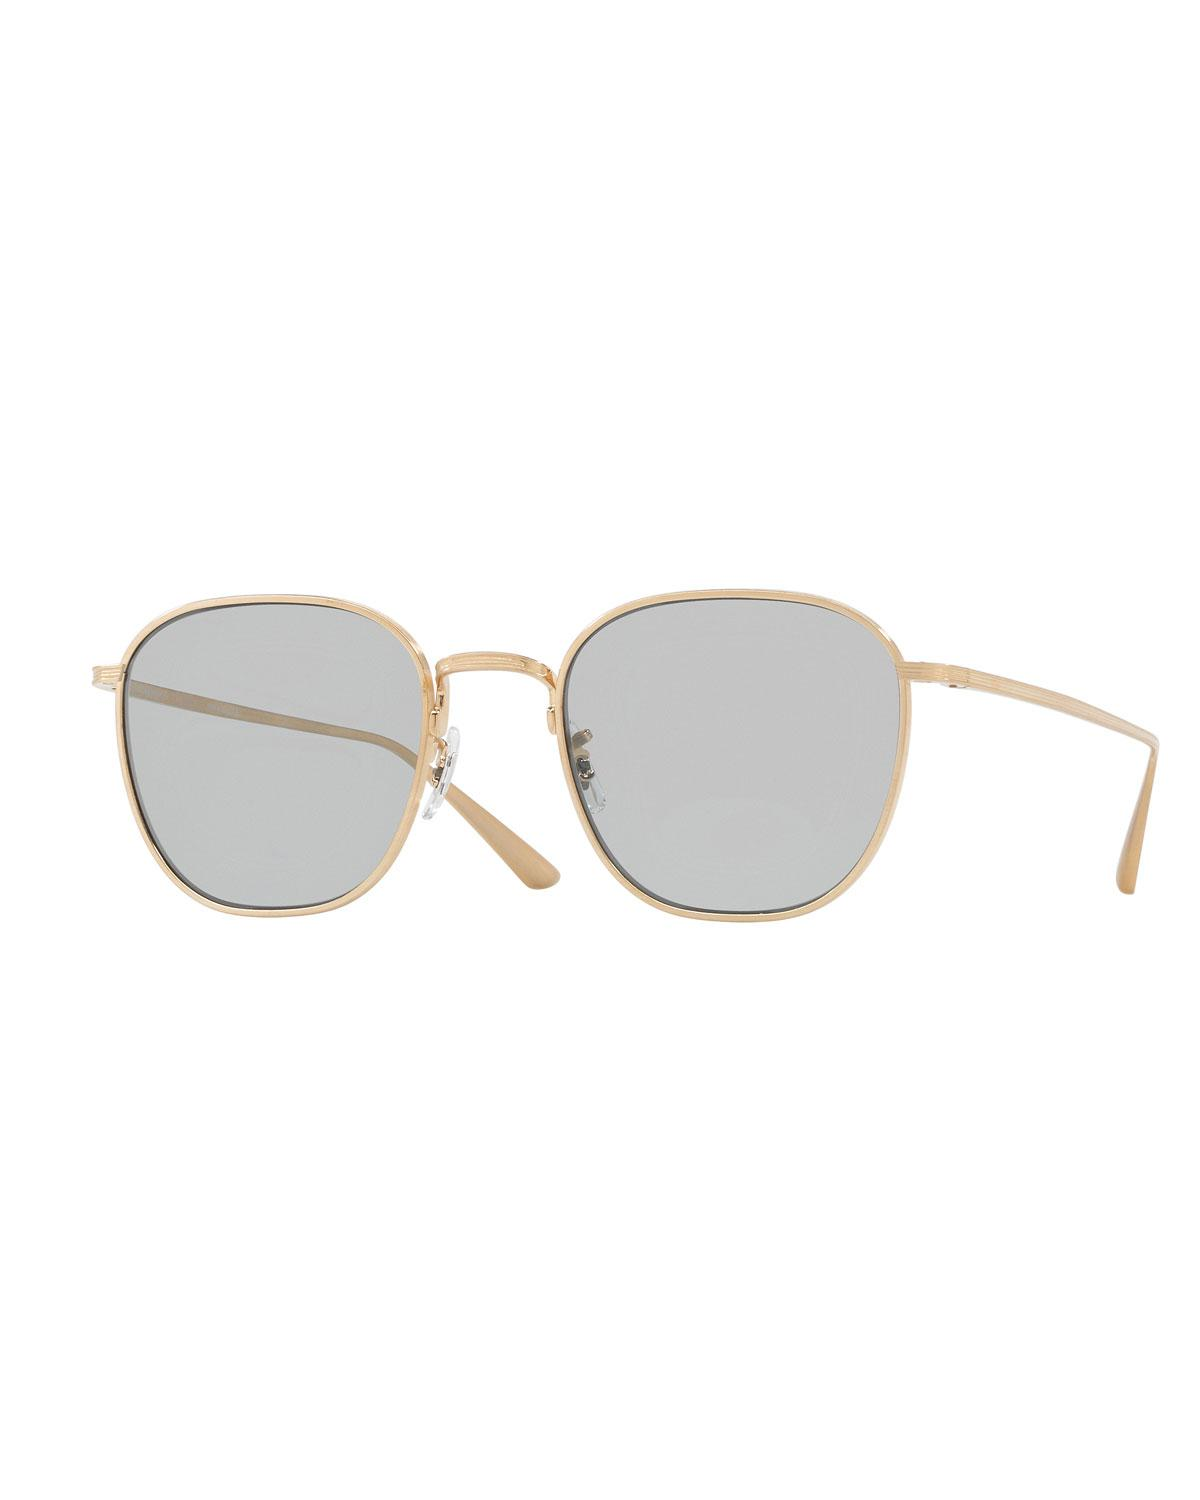 1089da4df82 Lyst - Oliver Peoples Board Meeting Square Photochromic Titanium ...